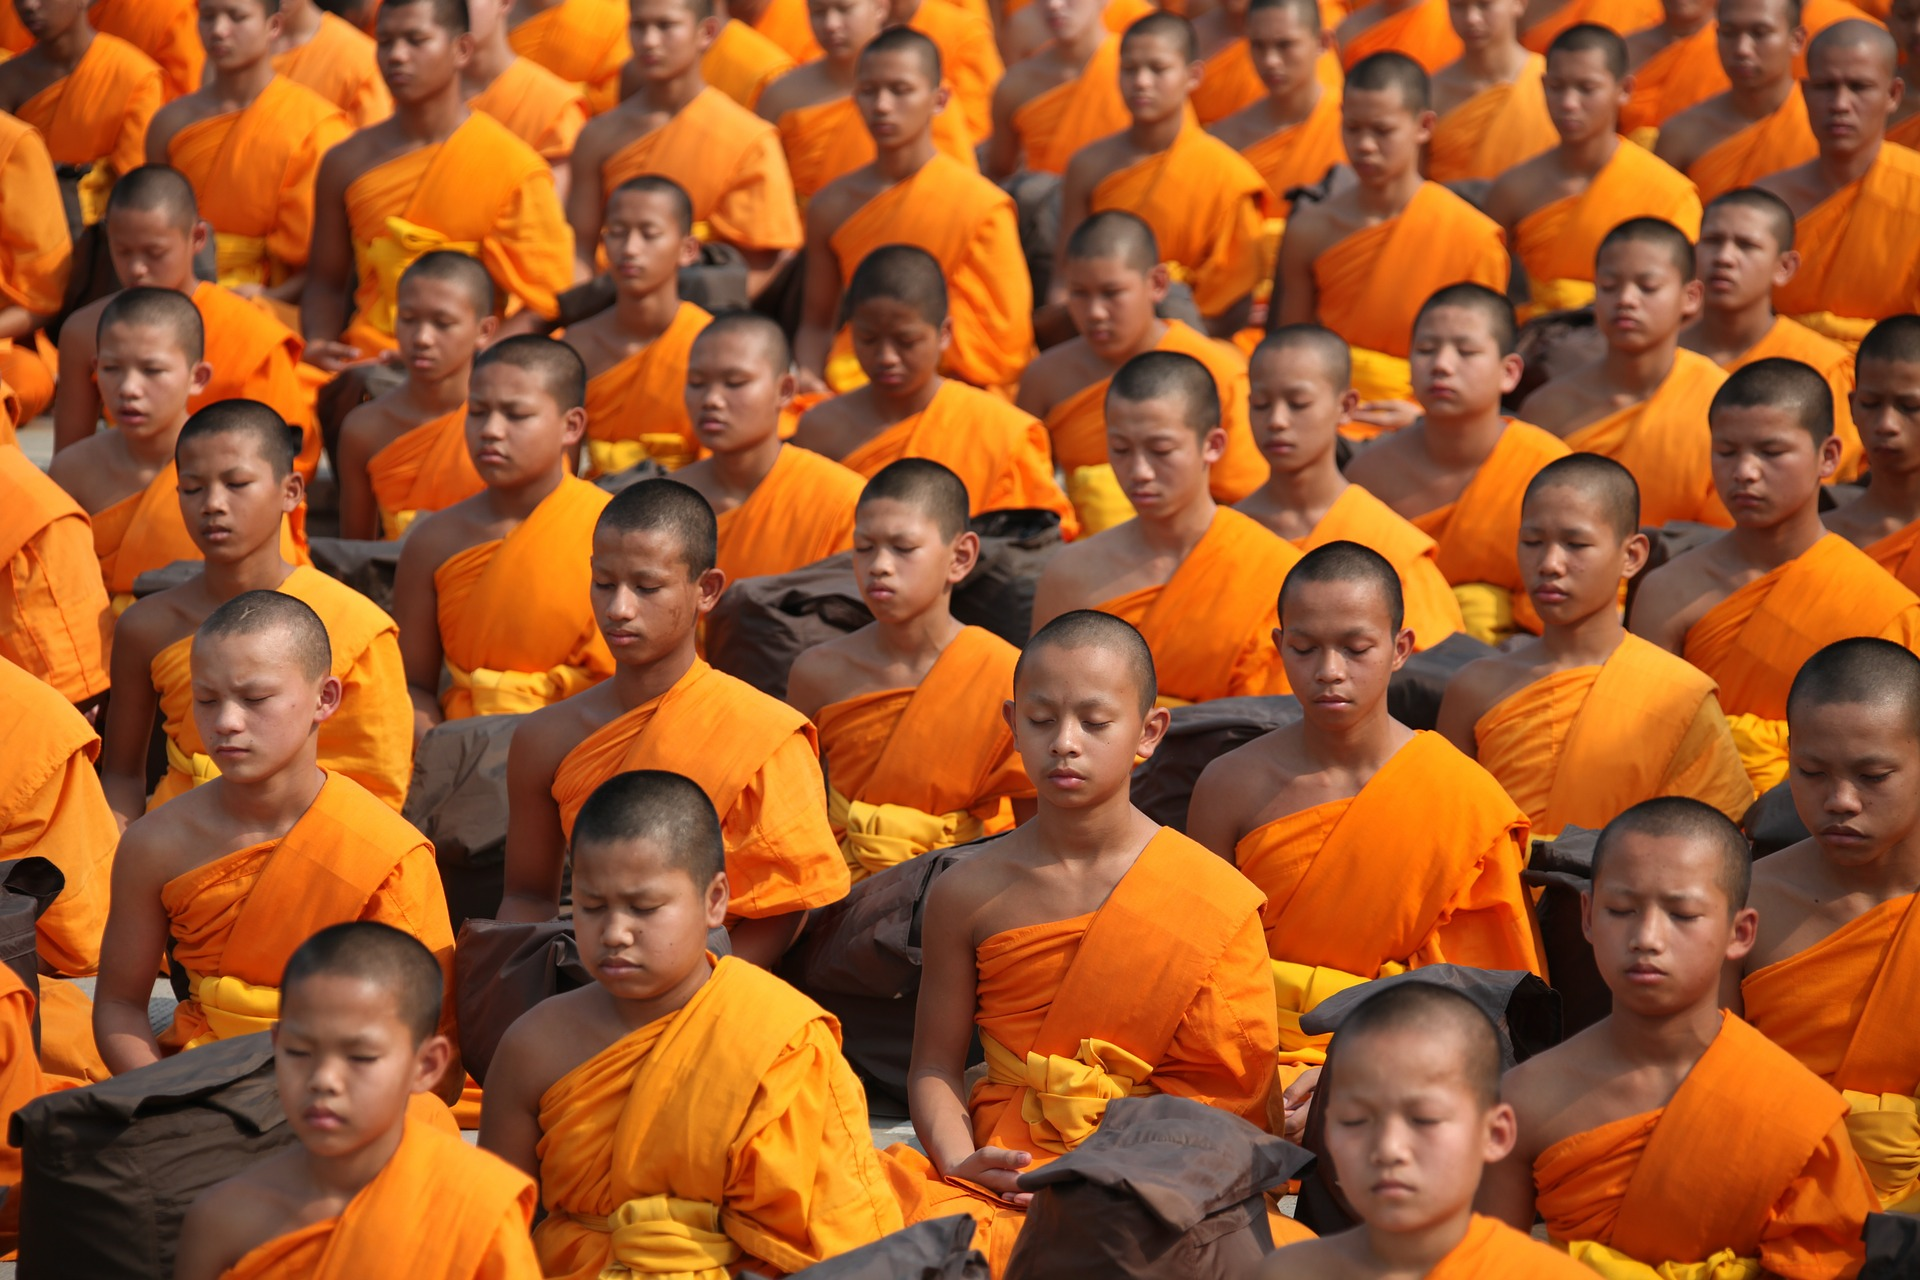 Monks Meditating